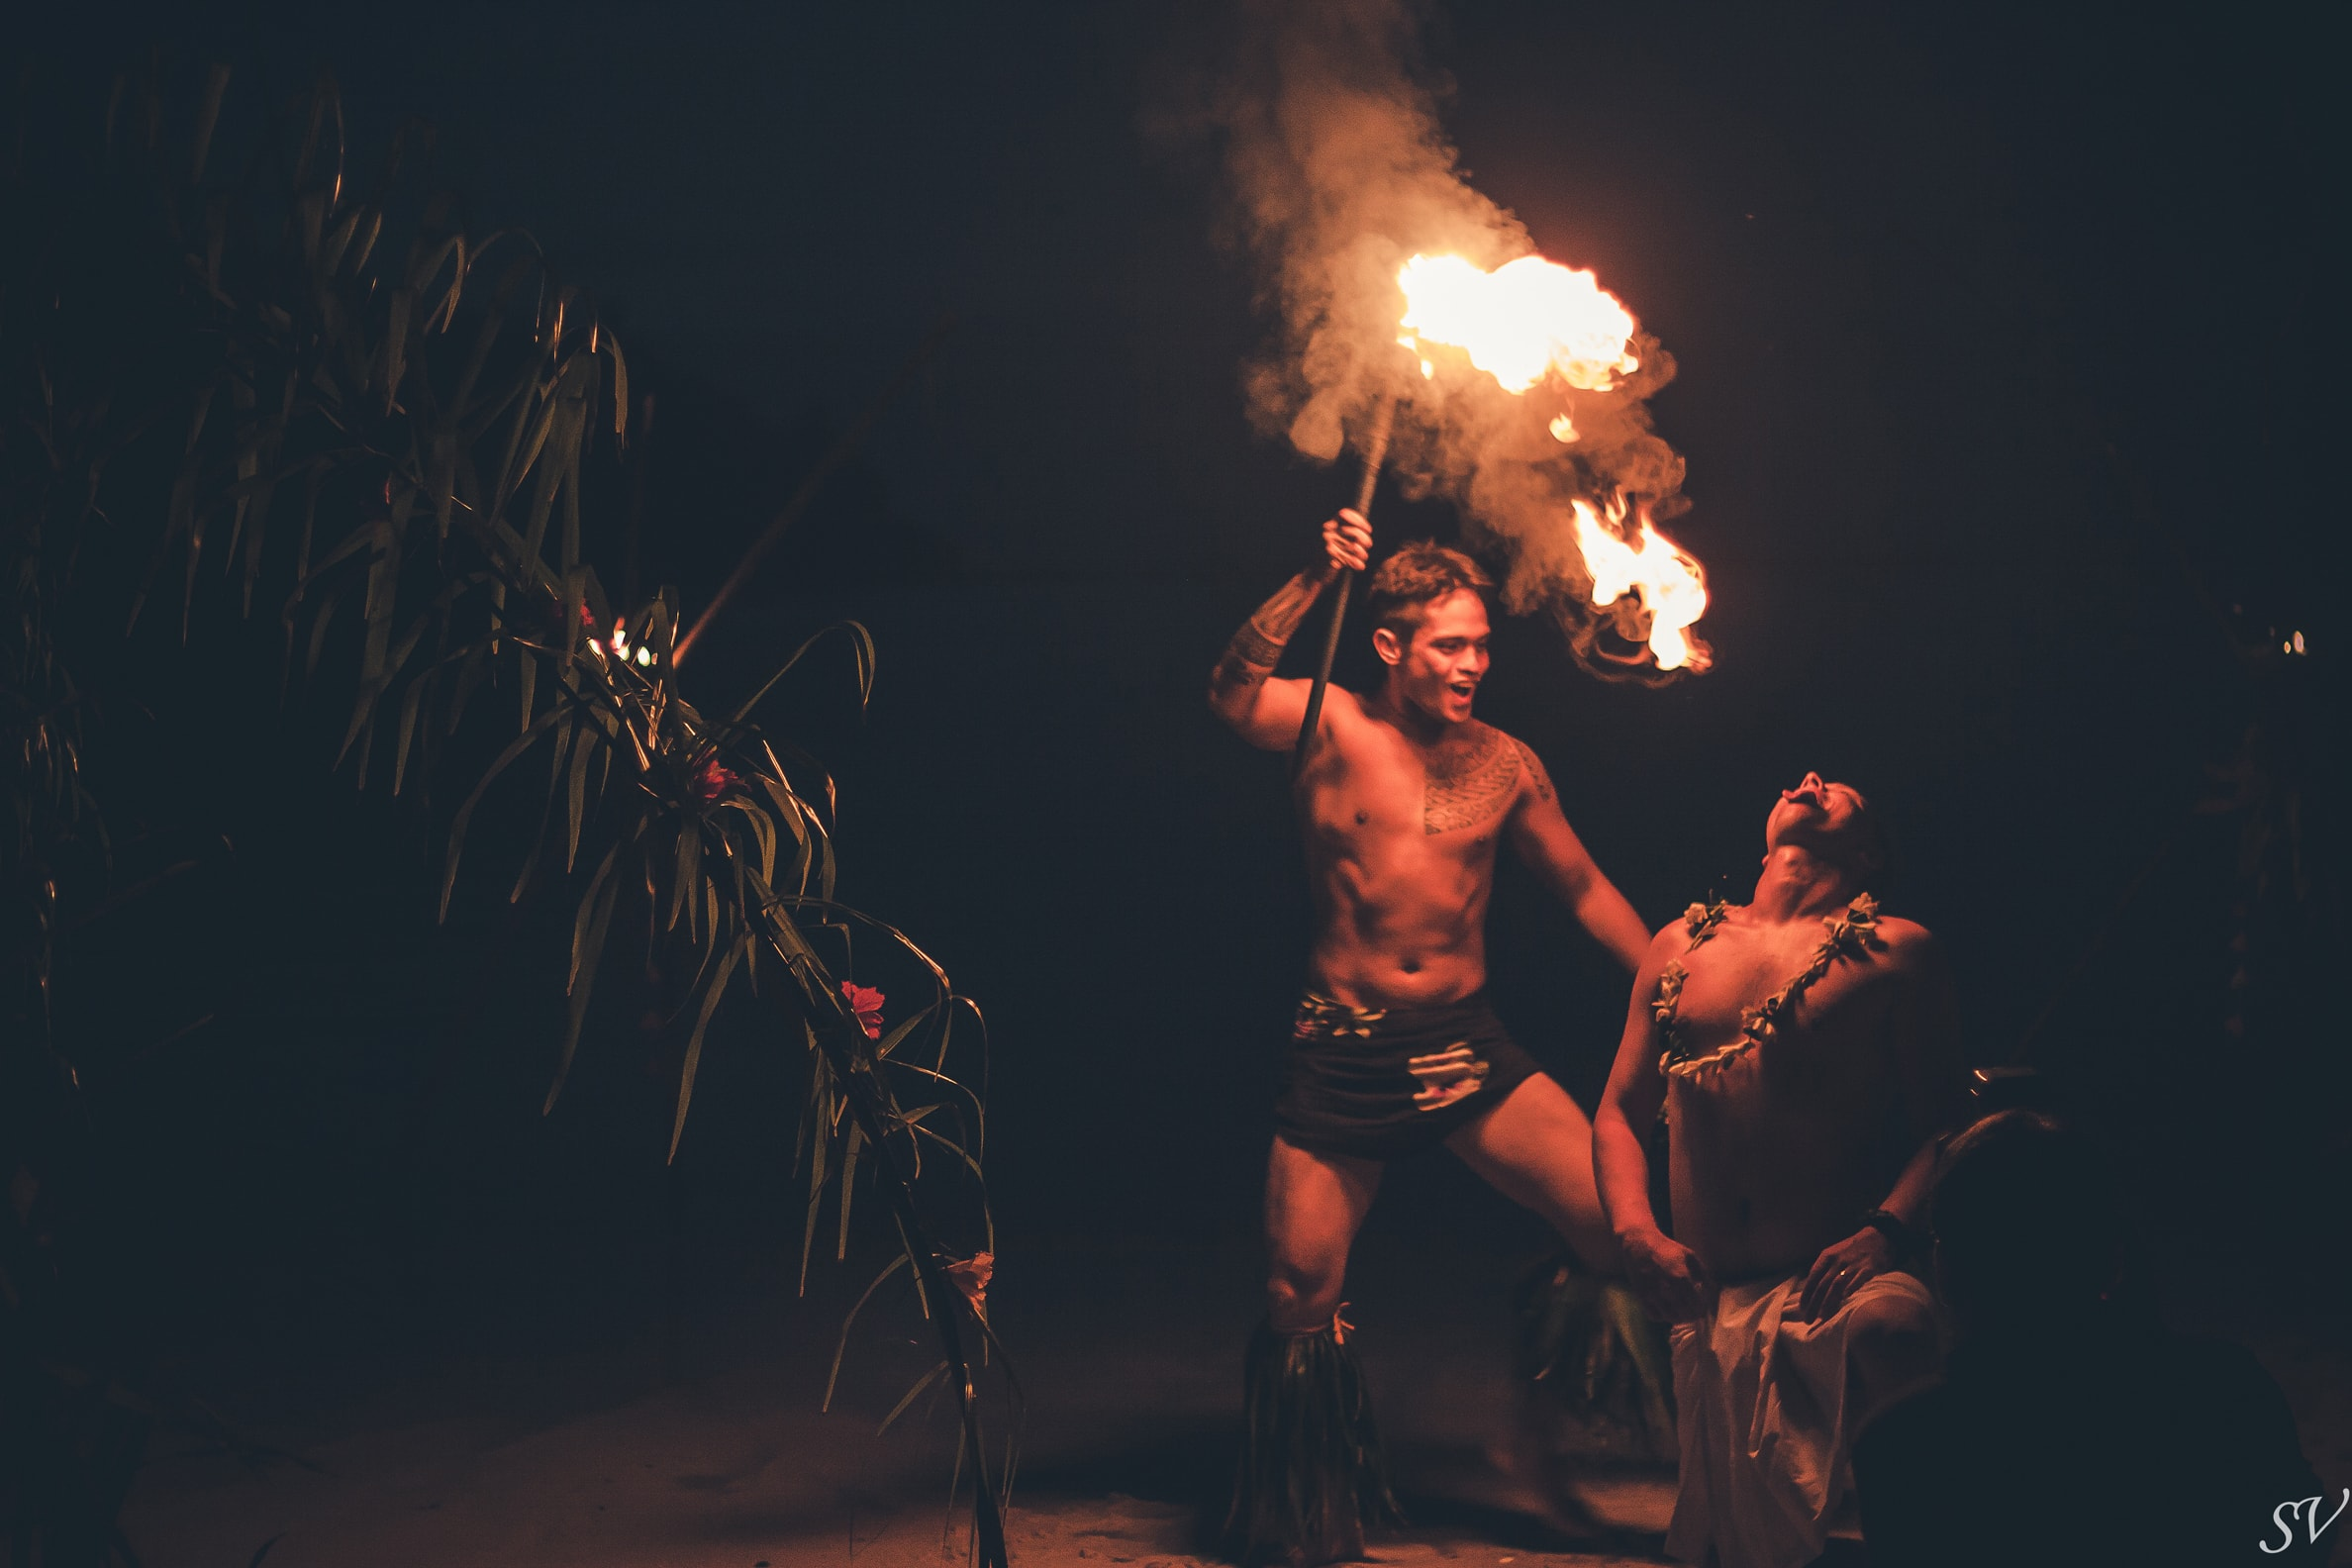 Fire try in the mouth of the groom